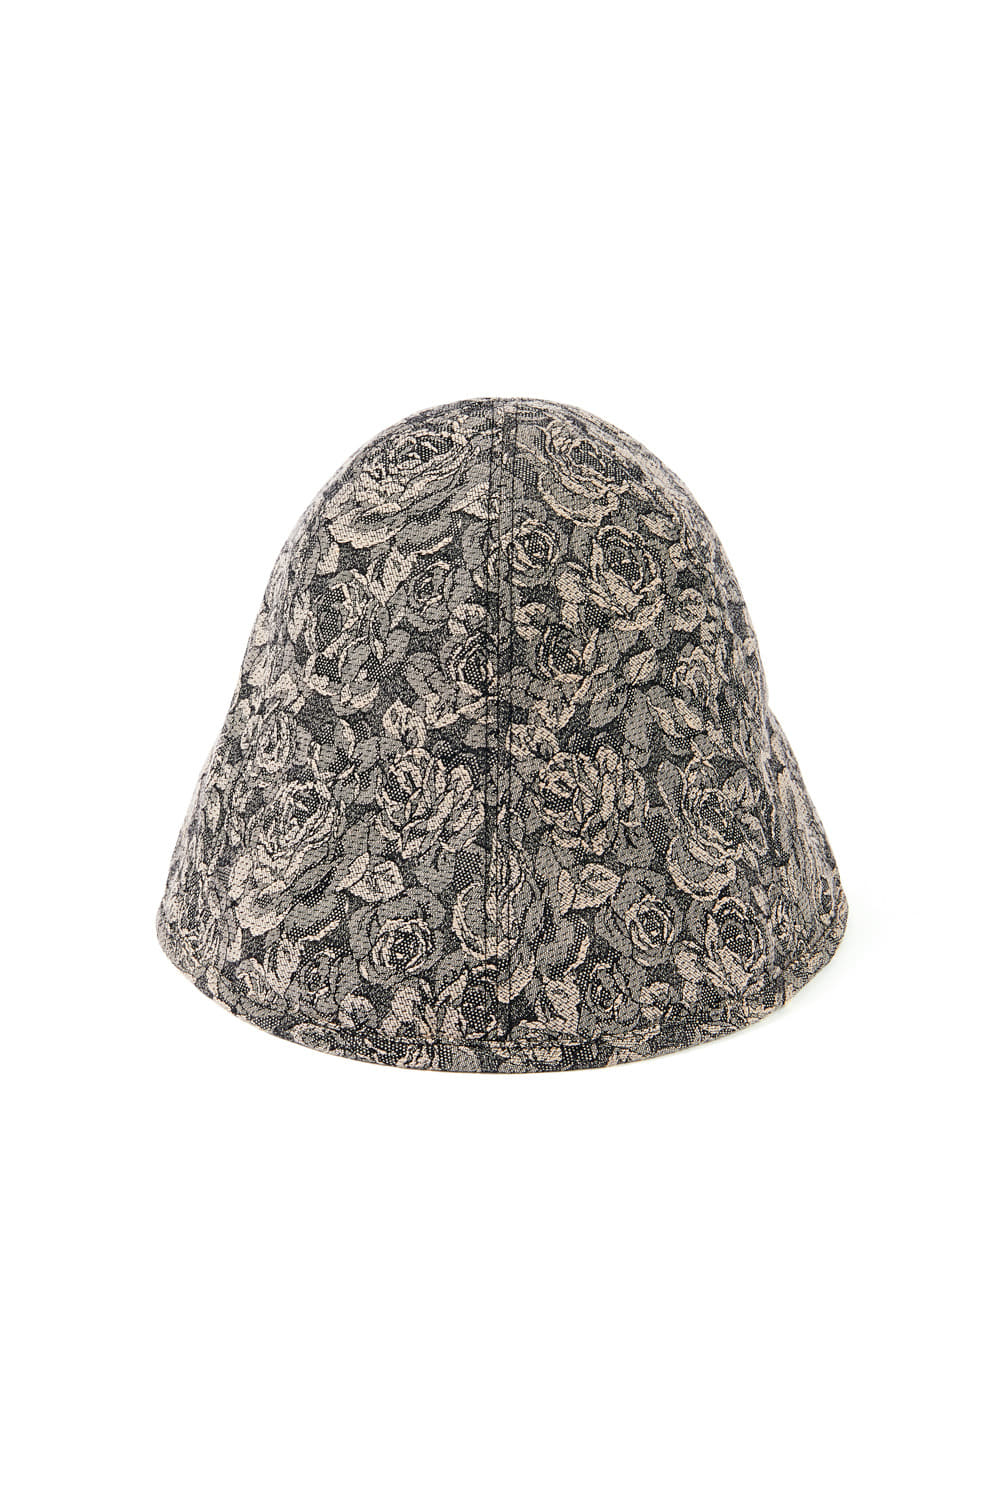 JACQUARD SLIT CLOCHE HAT_beige rose